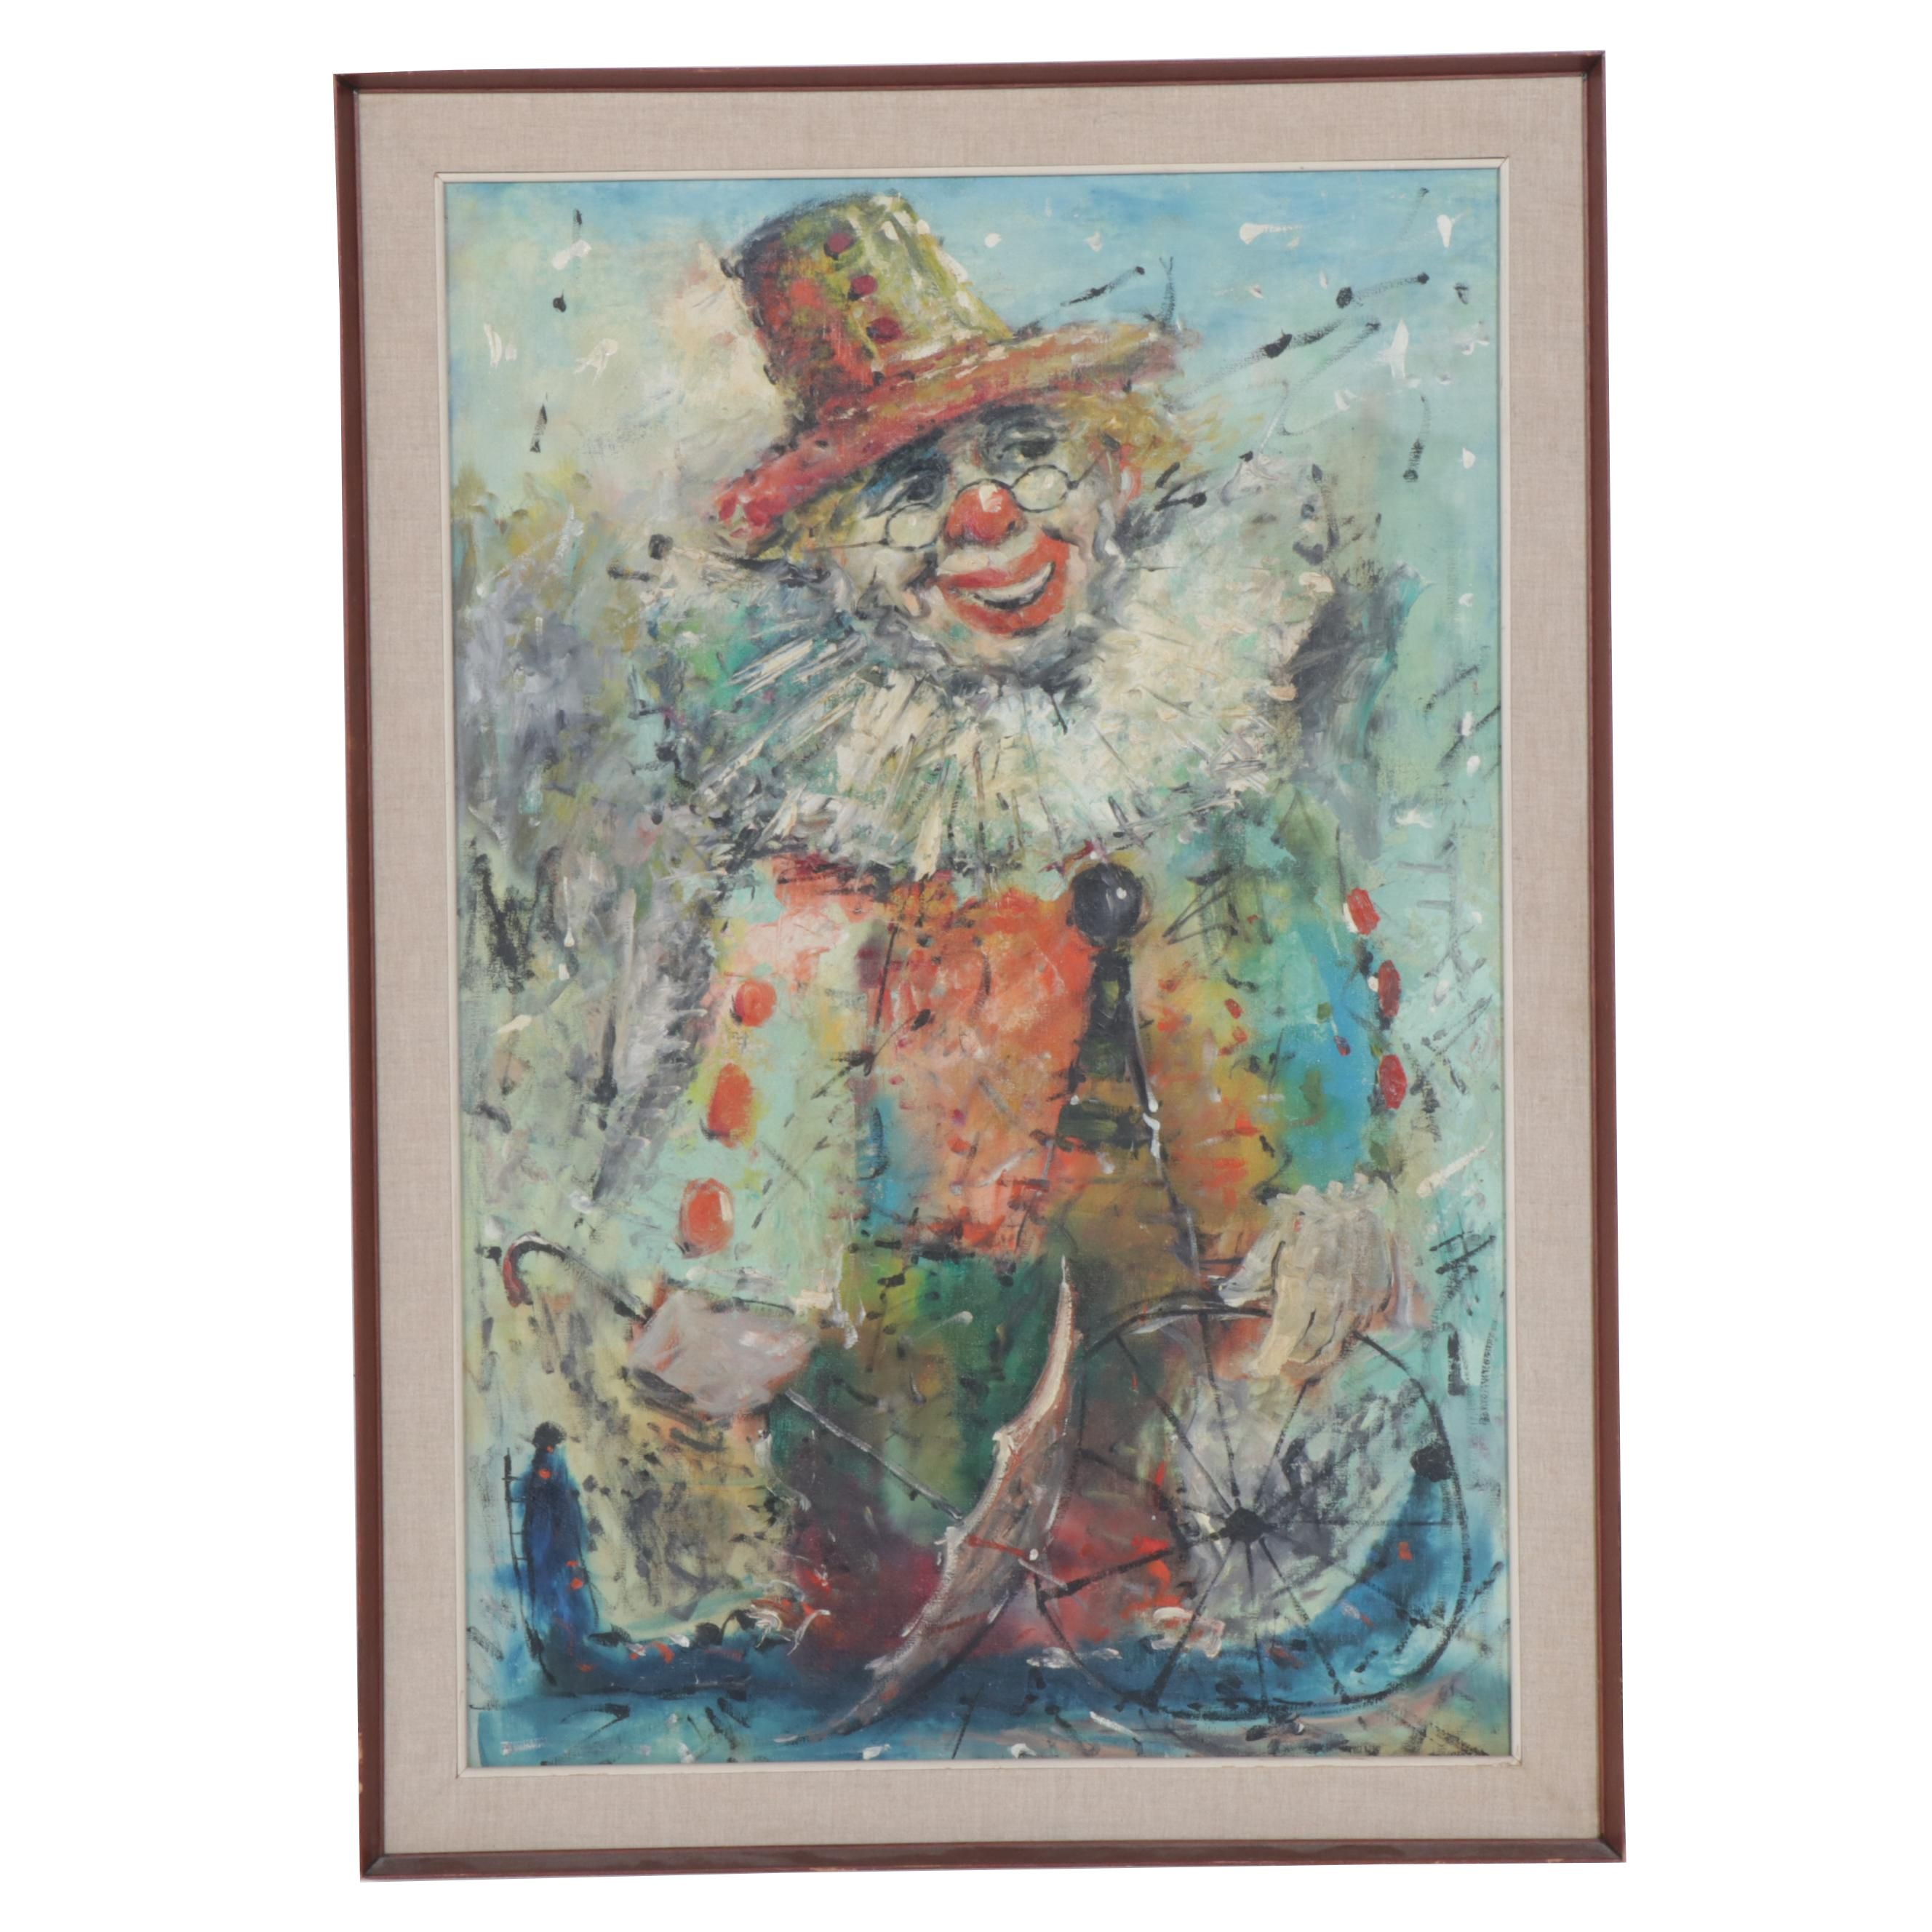 Charles Pults Oil Painting of a Clown